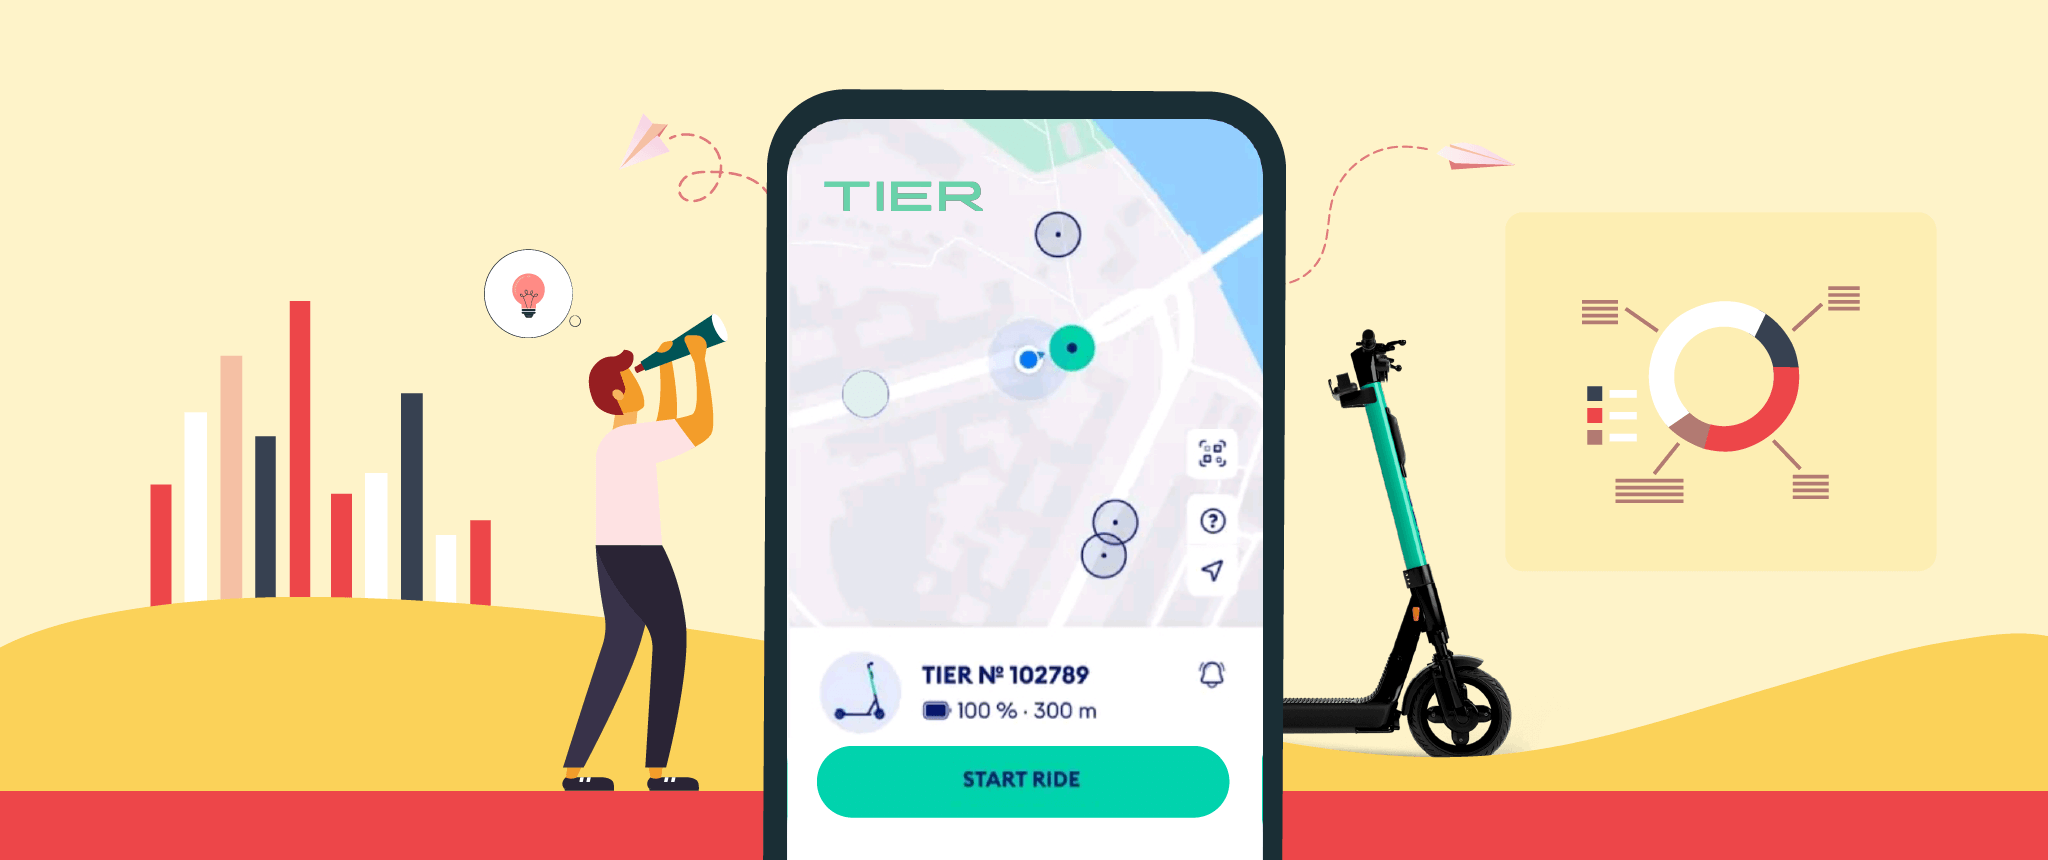 Fast-Growing Mobility App TIER Reveals the Golden Rules of Relevancy and Retention